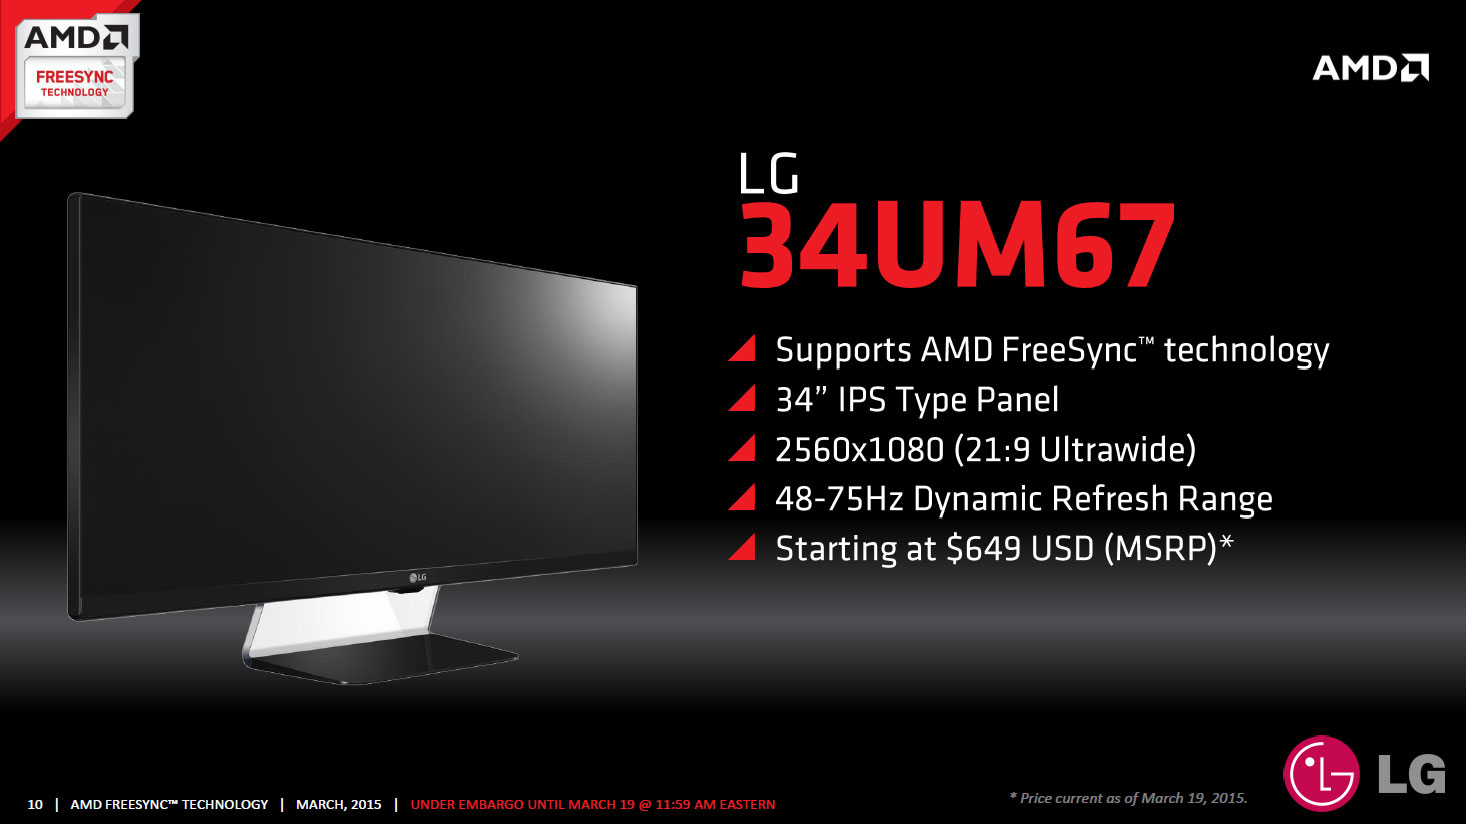 FreeSync Displays And Pricing The AMD FreeSync Review